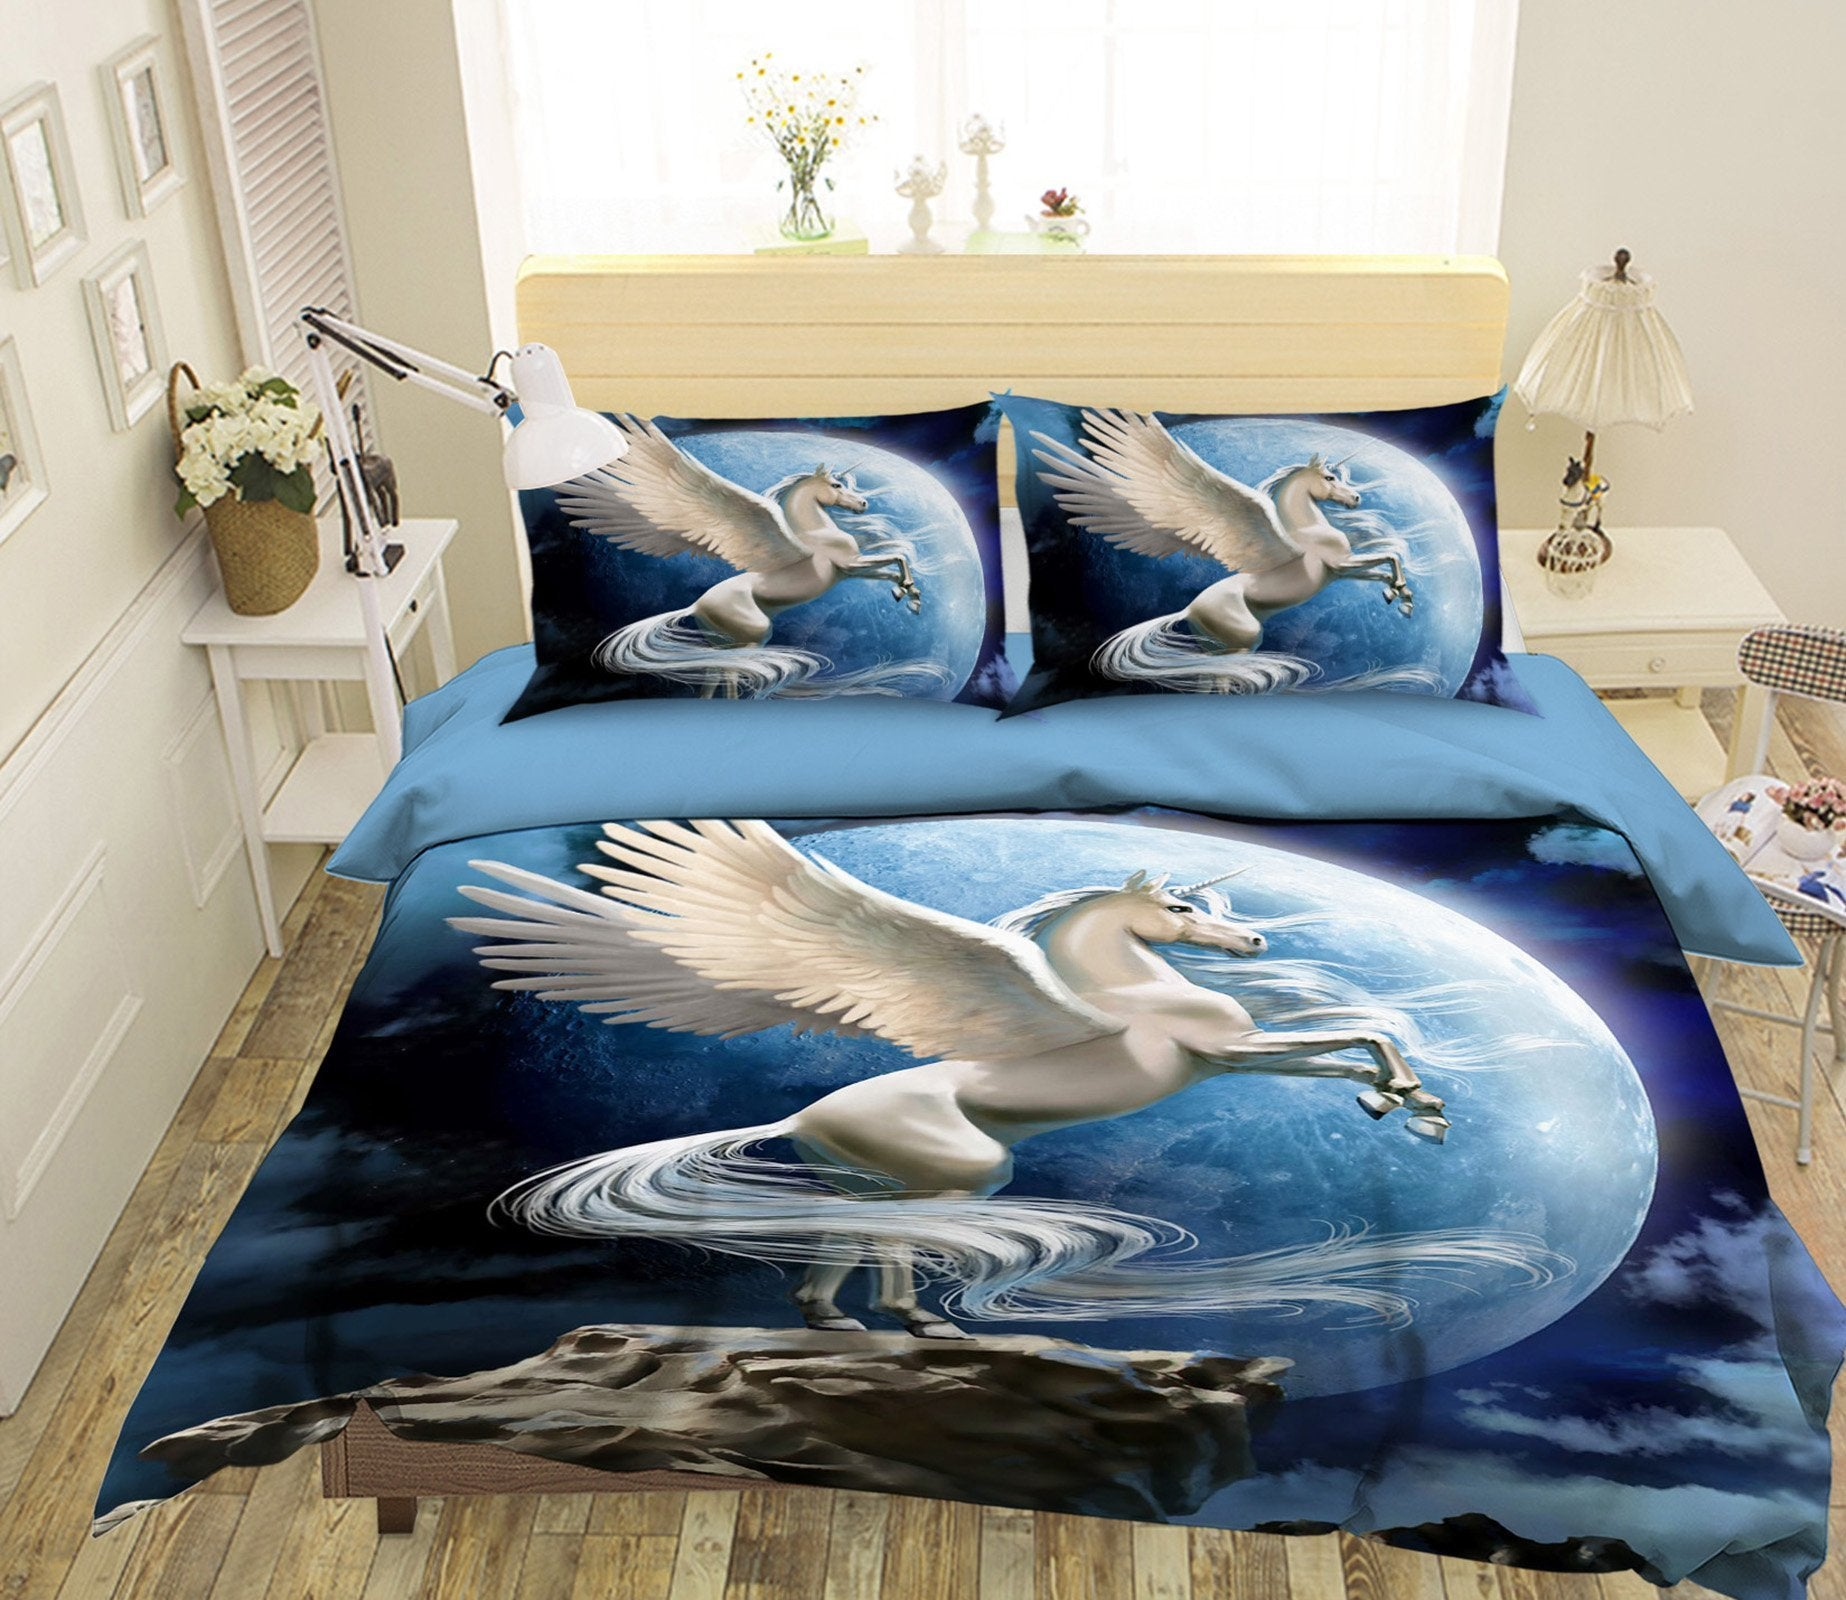 3D Round Moon Unicorn 046 Bed Pillowcases Quilt Wallpaper AJ Wallpaper